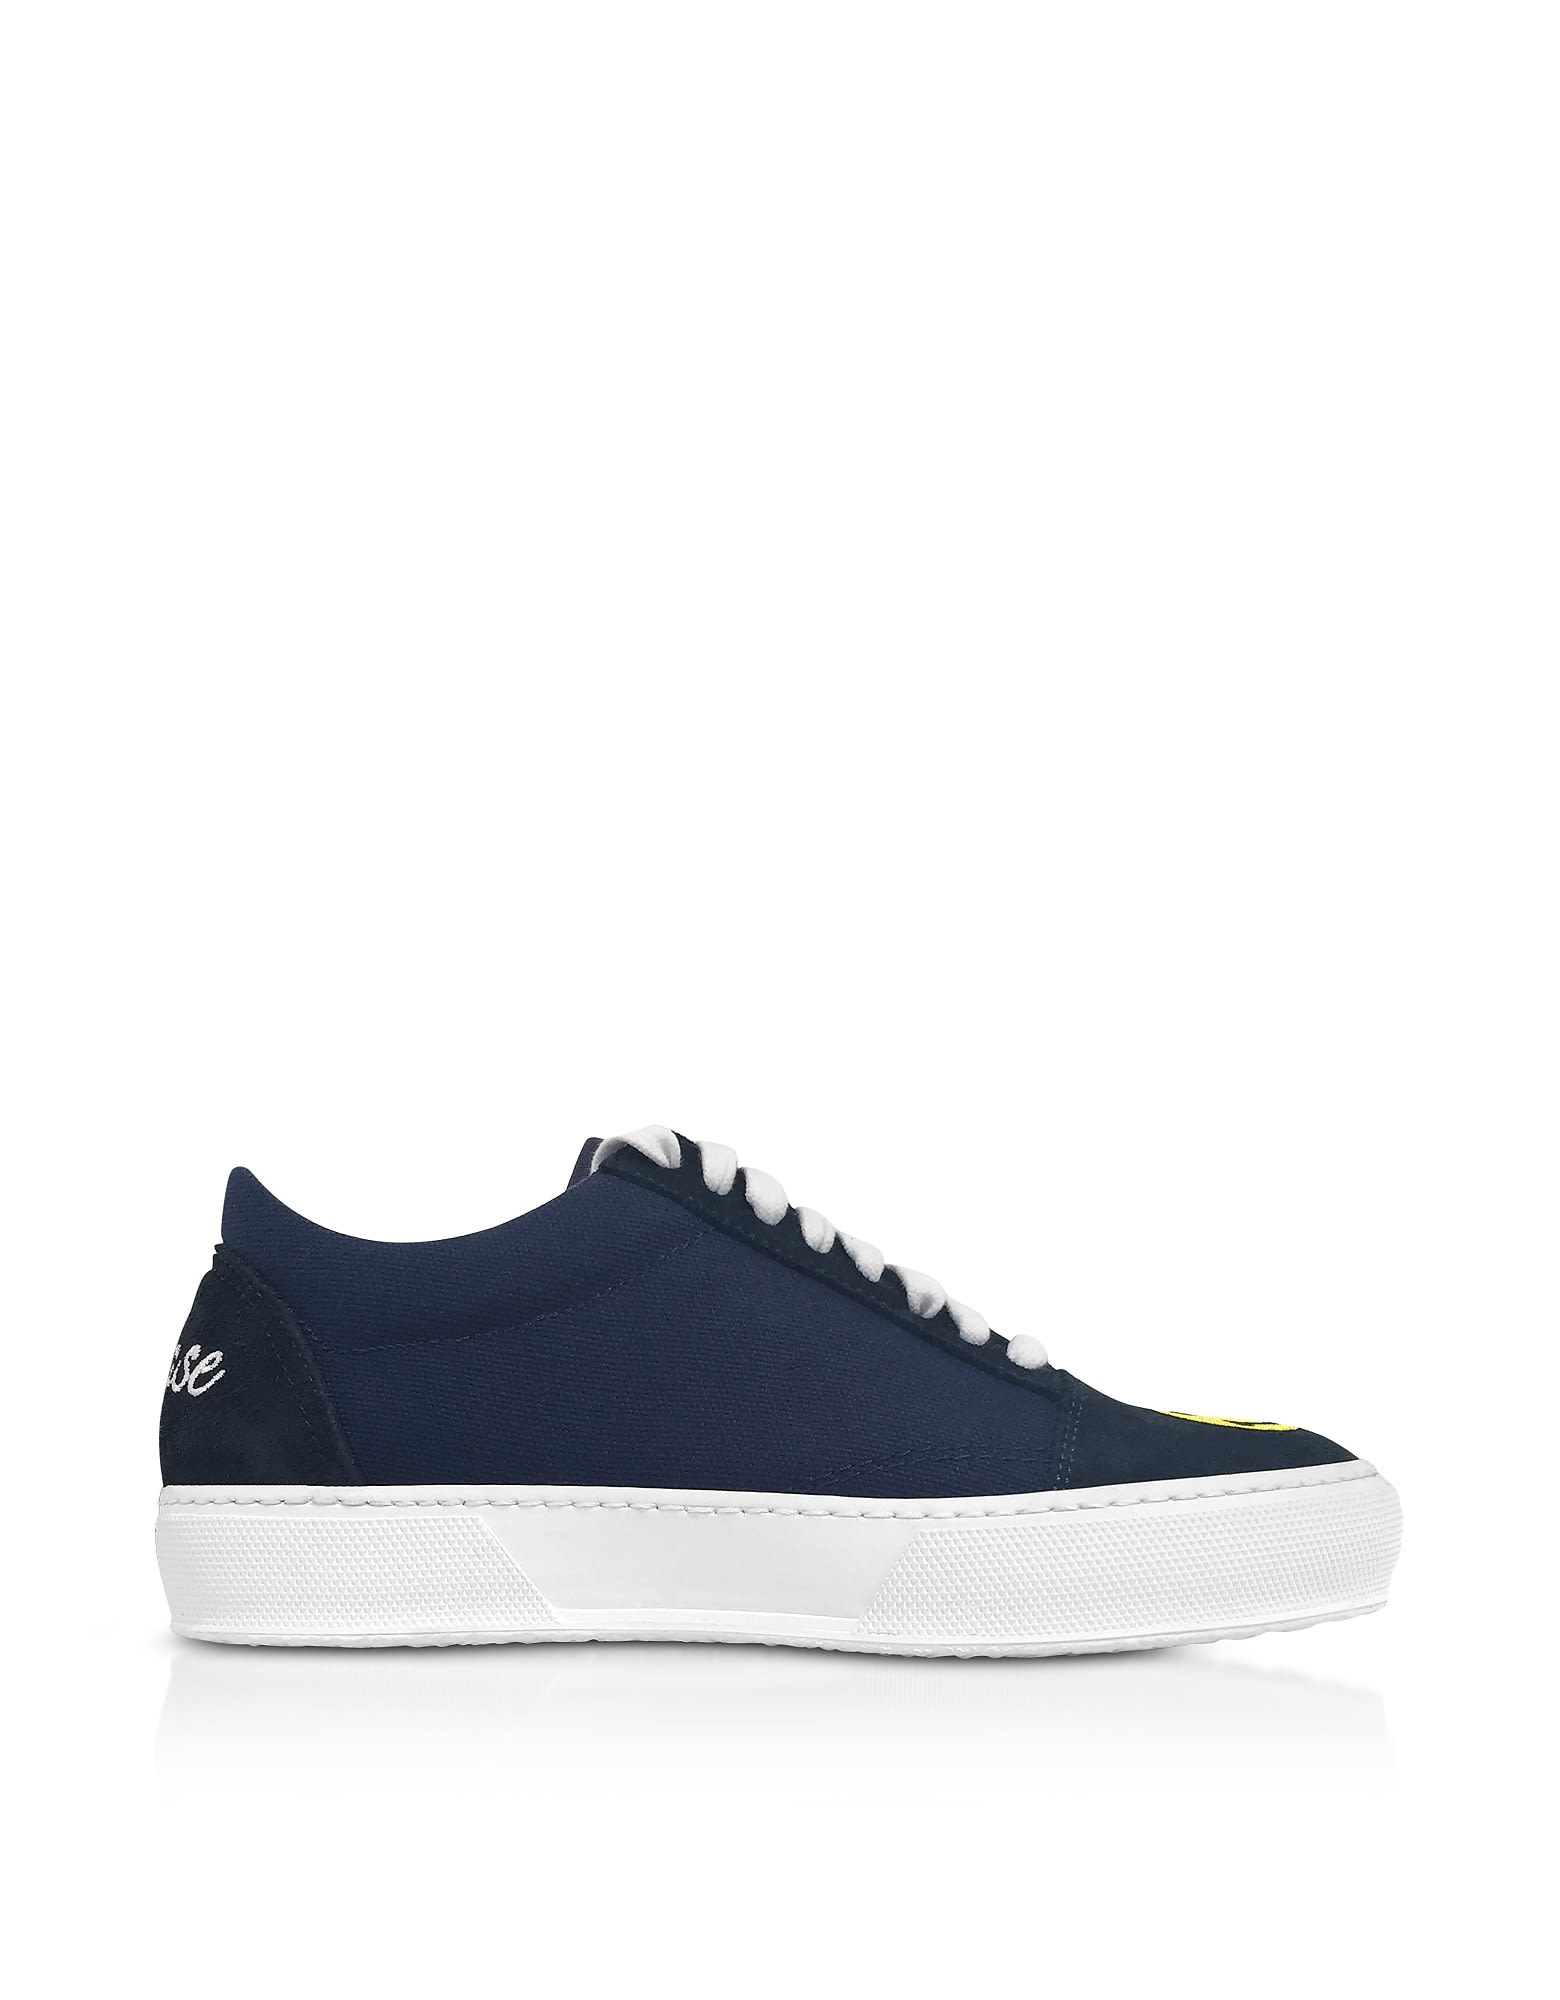 JOSHUA SANDERS Designer Shoes, Cotton and Leather Smile Embroidery Lace Up Sneakers